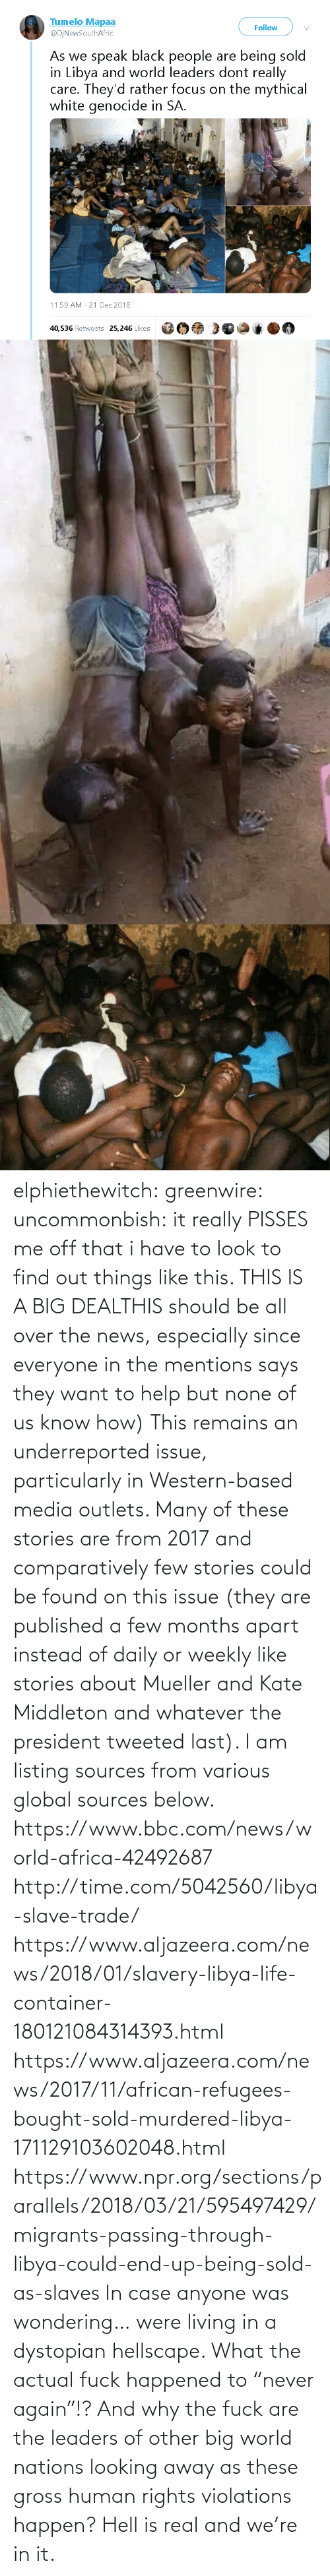 "In Case: elphiethewitch: greenwire:  uncommonbish:  it really PISSES me off that i have to look to find out things like this. THIS IS A BIG DEALTHIS should be all over the news, especially since everyone in the mentions says they want to help but none of us know how)  This remains an underreported issue, particularly in Western-based media outlets. Many of these stories are from 2017 and comparatively few stories could be found on this issue (they are published a few months apart instead of daily or weekly like stories about Mueller and Kate Middleton and whatever the president tweeted last). I am listing sources from various global sources below.  https://www.bbc.com/news/world-africa-42492687 http://time.com/5042560/libya-slave-trade/ https://www.aljazeera.com/news/2018/01/slavery-libya-life-container-180121084314393.html https://www.aljazeera.com/news/2017/11/african-refugees-bought-sold-murdered-libya-171129103602048.html https://www.npr.org/sections/parallels/2018/03/21/595497429/migrants-passing-through-libya-could-end-up-being-sold-as-slaves   In case anyone was wondering… were living in a dystopian hellscape.  What the actual fuck happened to ""never again""!? And why the fuck are the leaders of other big world nations looking away as these gross human rights violations happen?  Hell is real and we're in it."